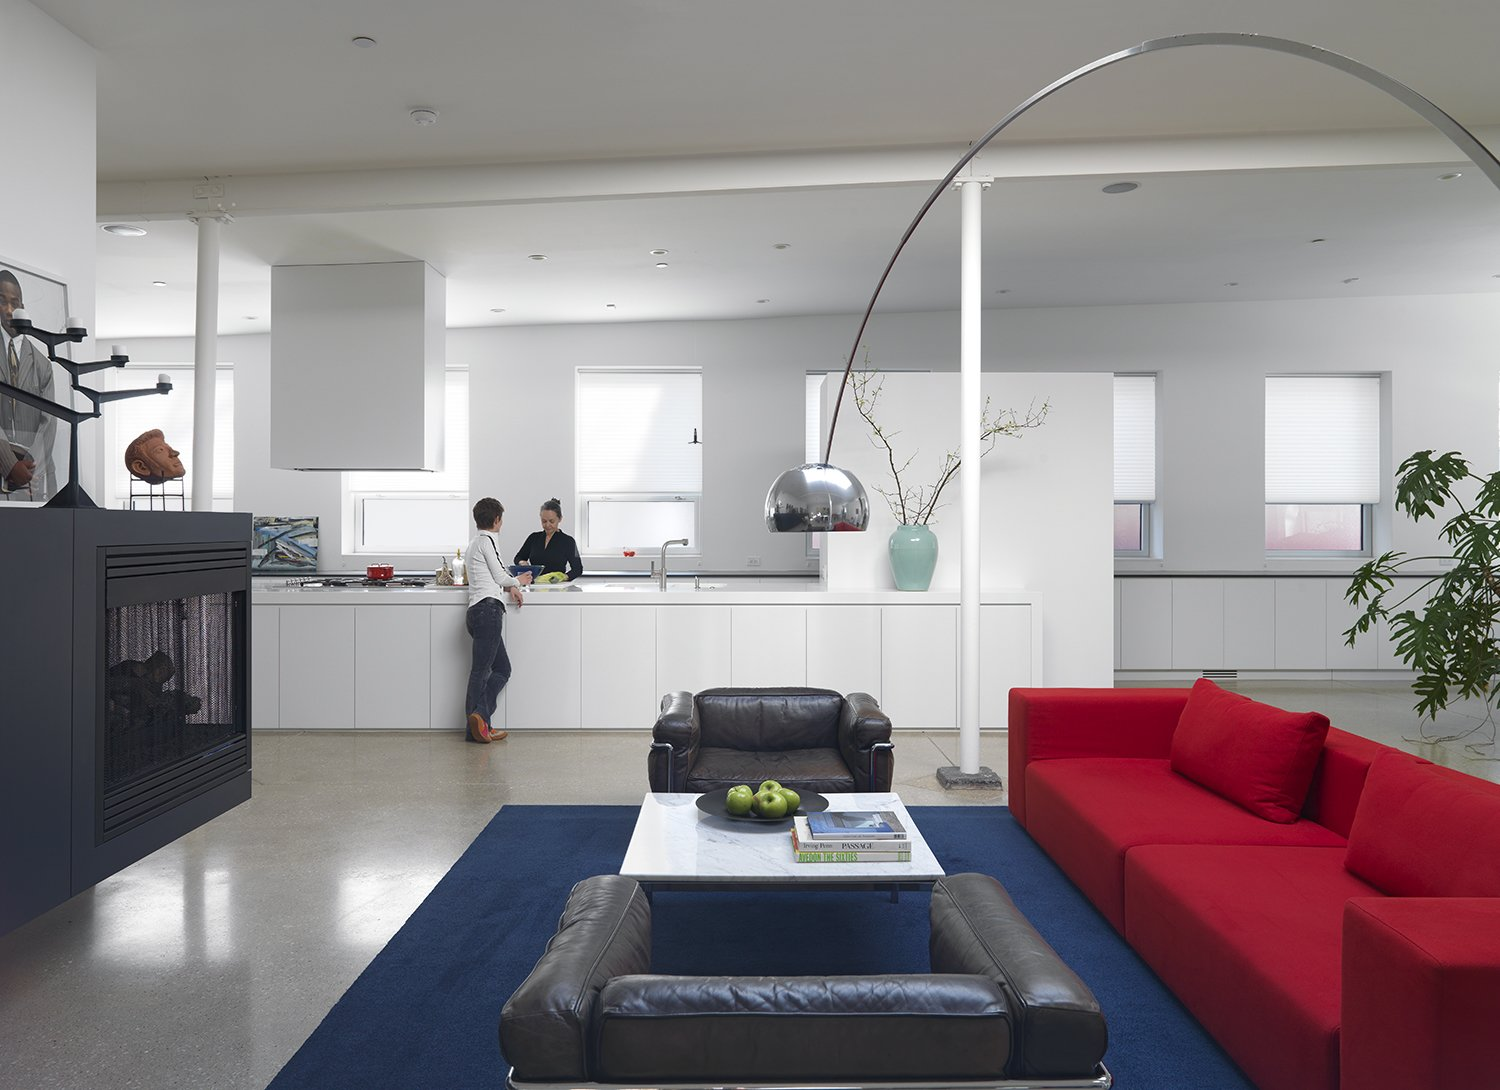 Saturation demarcates the line between the primary living space and kitchen in the existing open-plan structure. Were it not for tonal contrasts, aided also by a ground and polished concrete floor, the kitchen would be a virtual whiteout.